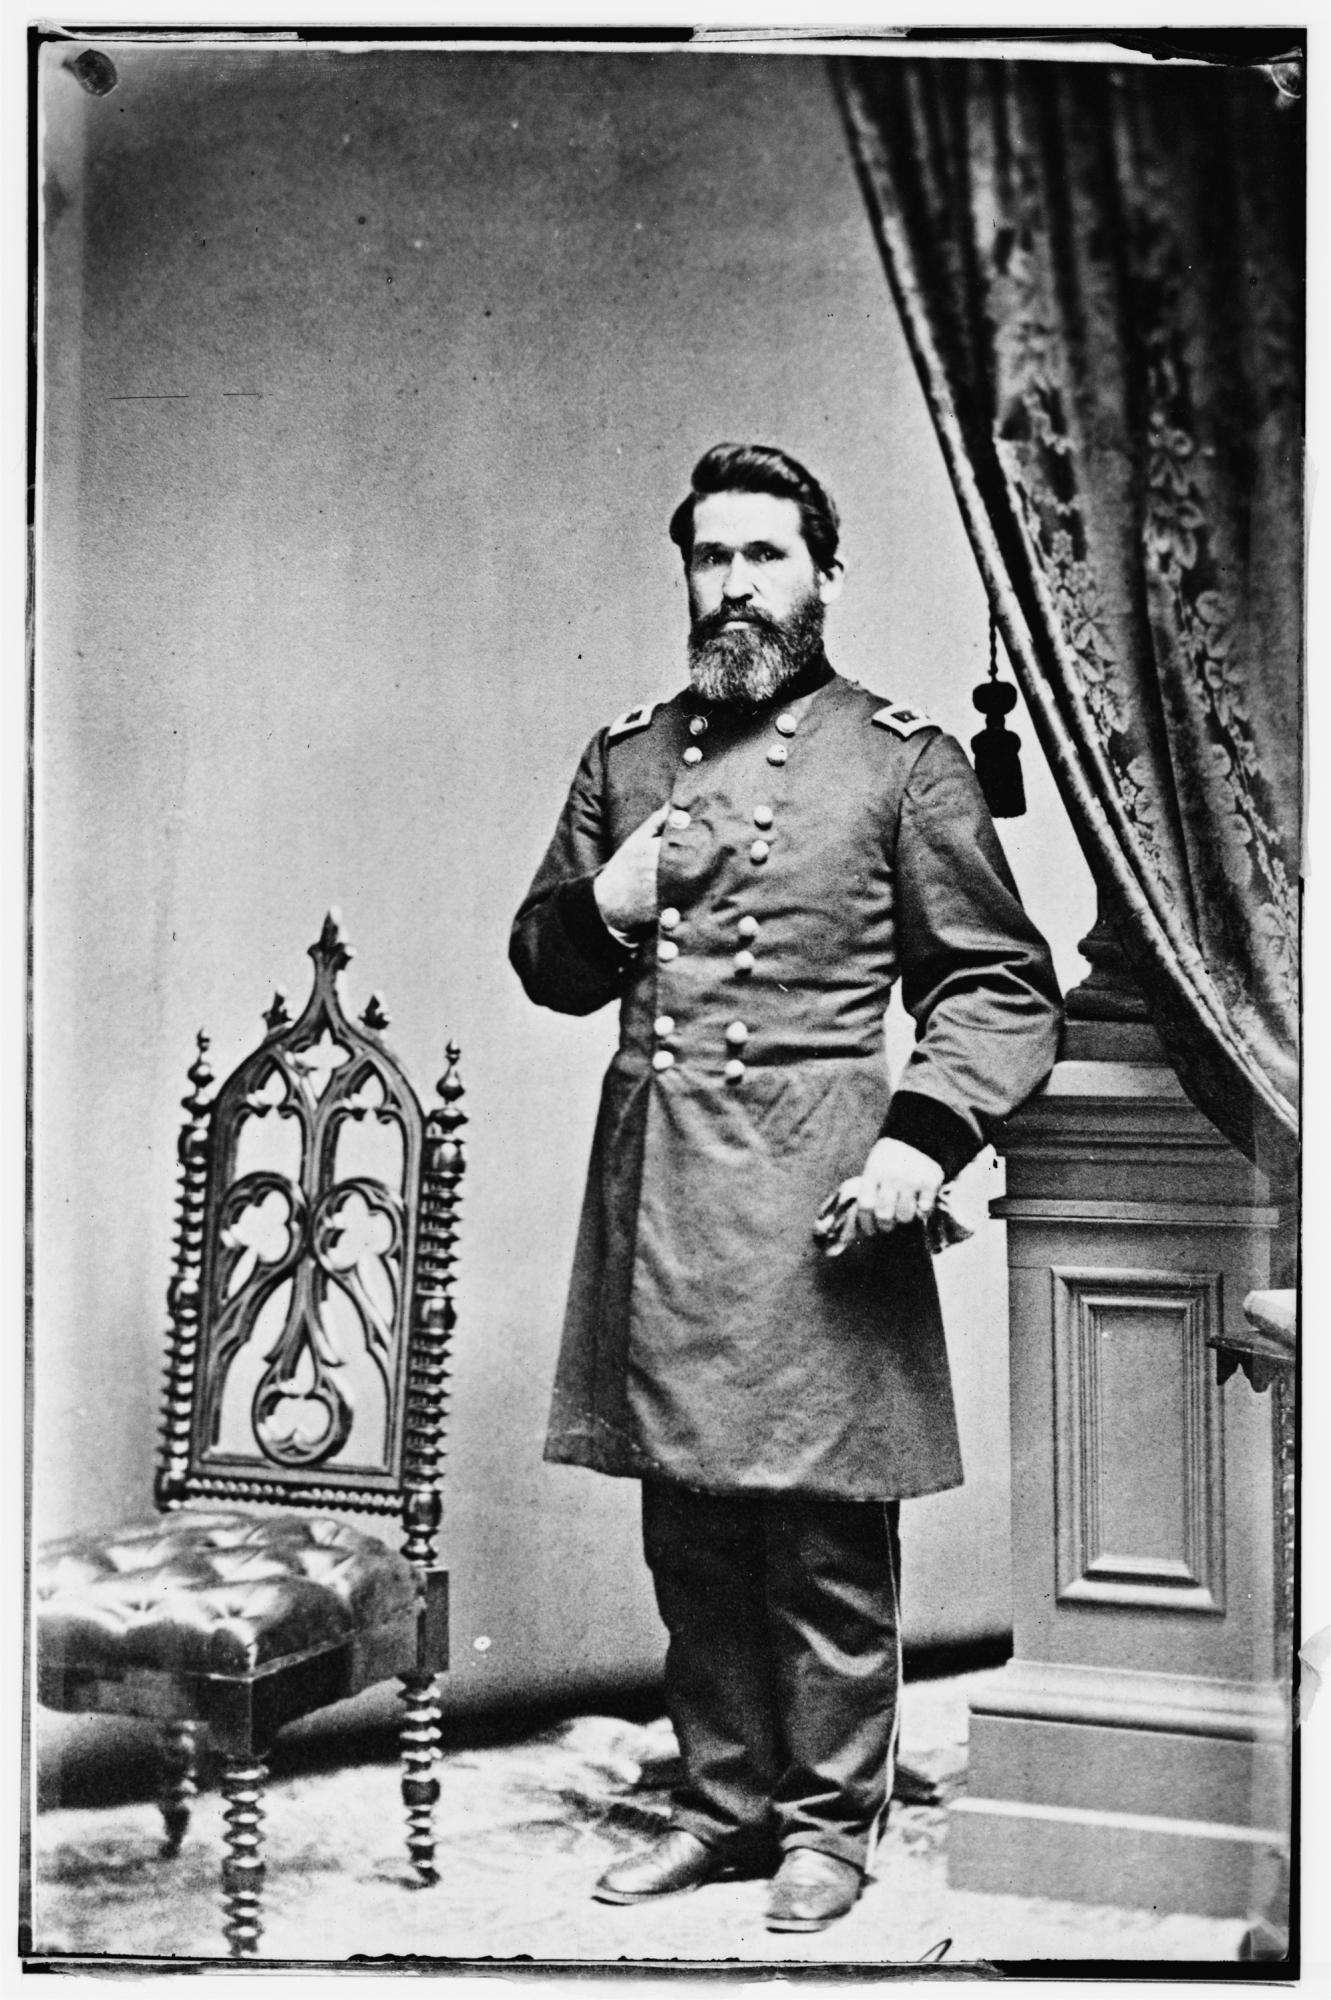 Union General James G. Blunt, who put up a stubborn defense against Sterling Price at Lexington and again later, at the Battle of Little Blue River. Blunt would play a pivotal role at Westport, and later pursue Price to the Arkansas border.